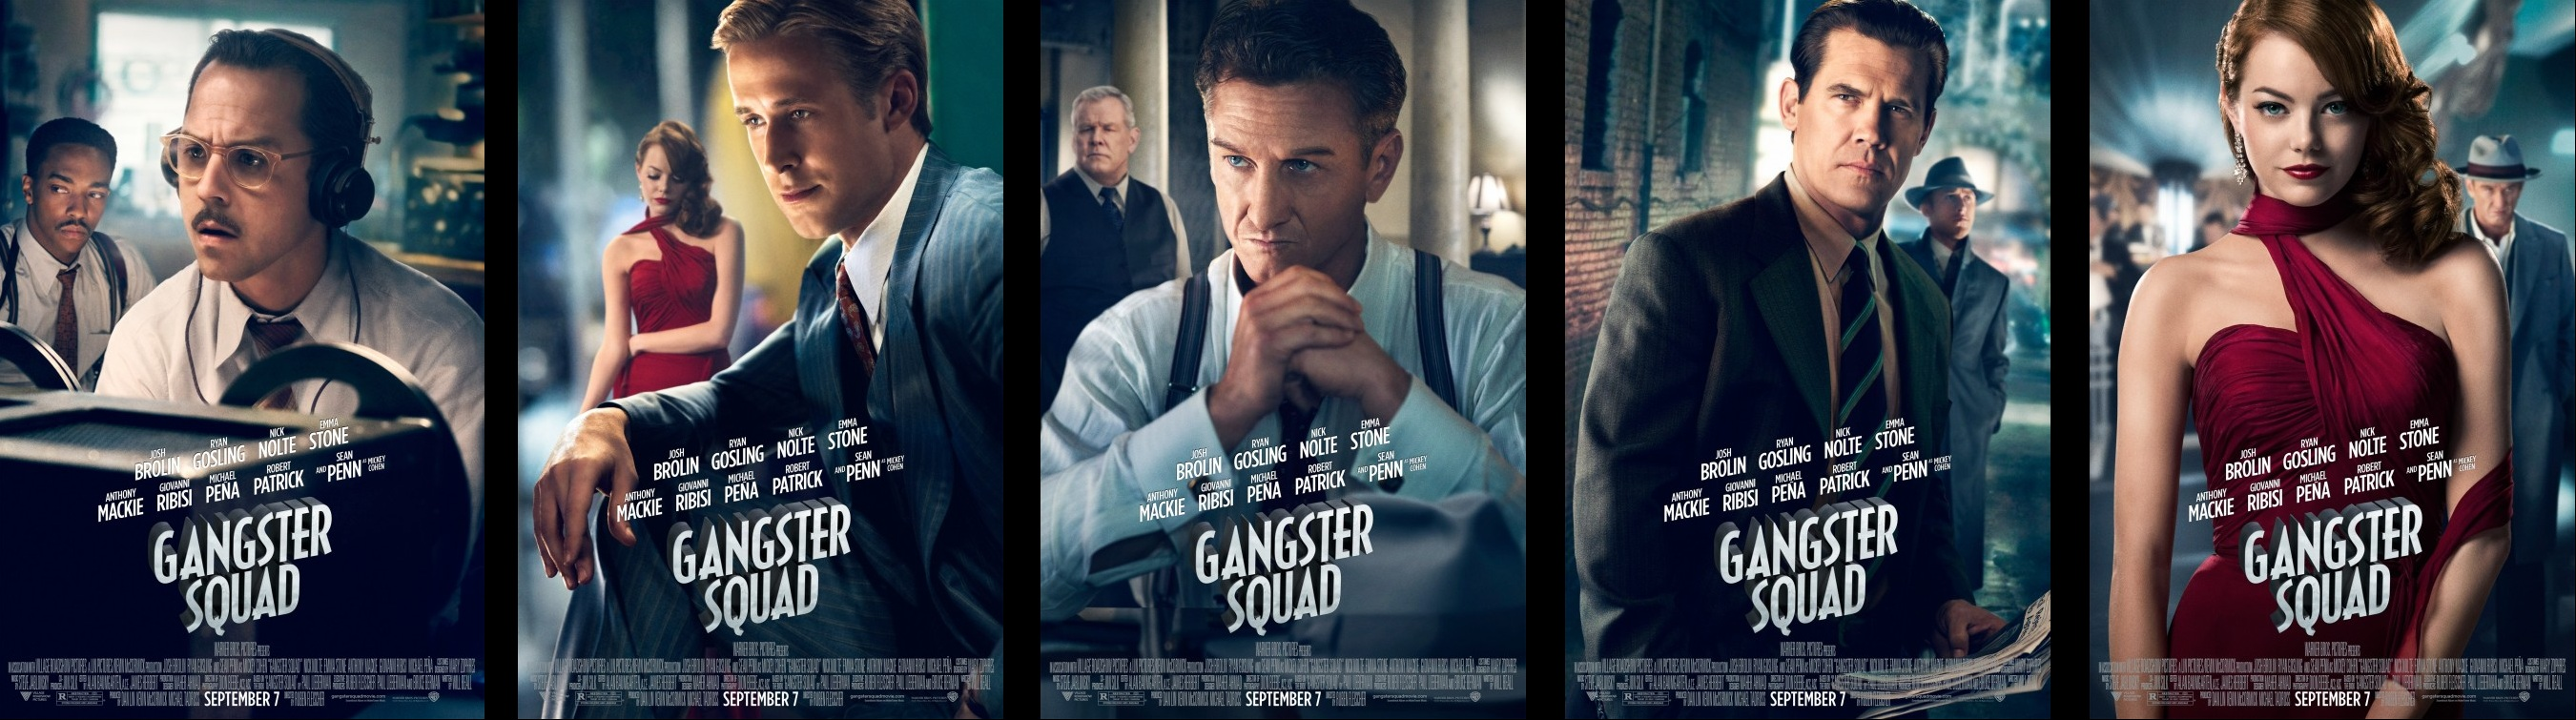 Gangster Squad Cast - Viewing Gallery Ryan Gosling